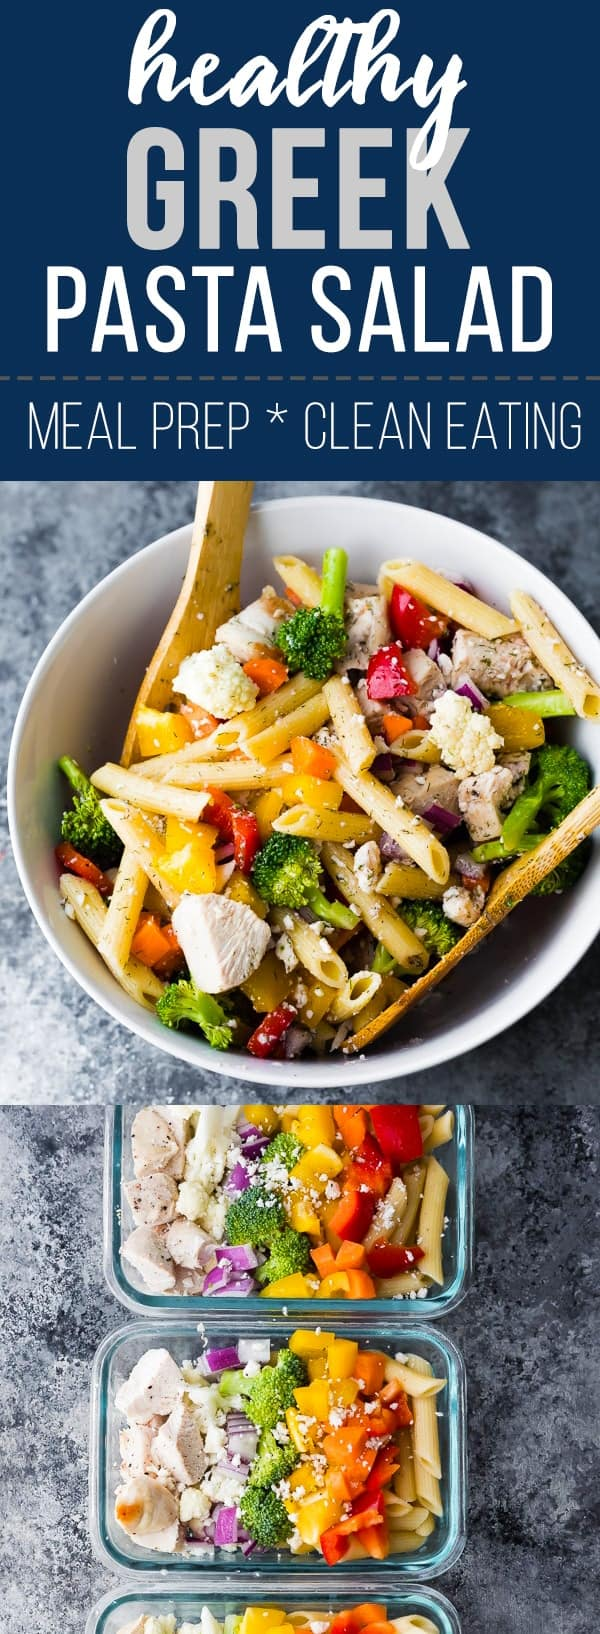 Healthy Greek chicken pasta salad recipe- whether you're heading for a picnic, a potluck, or meal prepping your lunches ahead, this salad is perfect for you! Tastes even better after the flavors marinate together for a day or two. #sweetpeasandsaffron #mealprep #pasta #pastasalad #salad #chicken